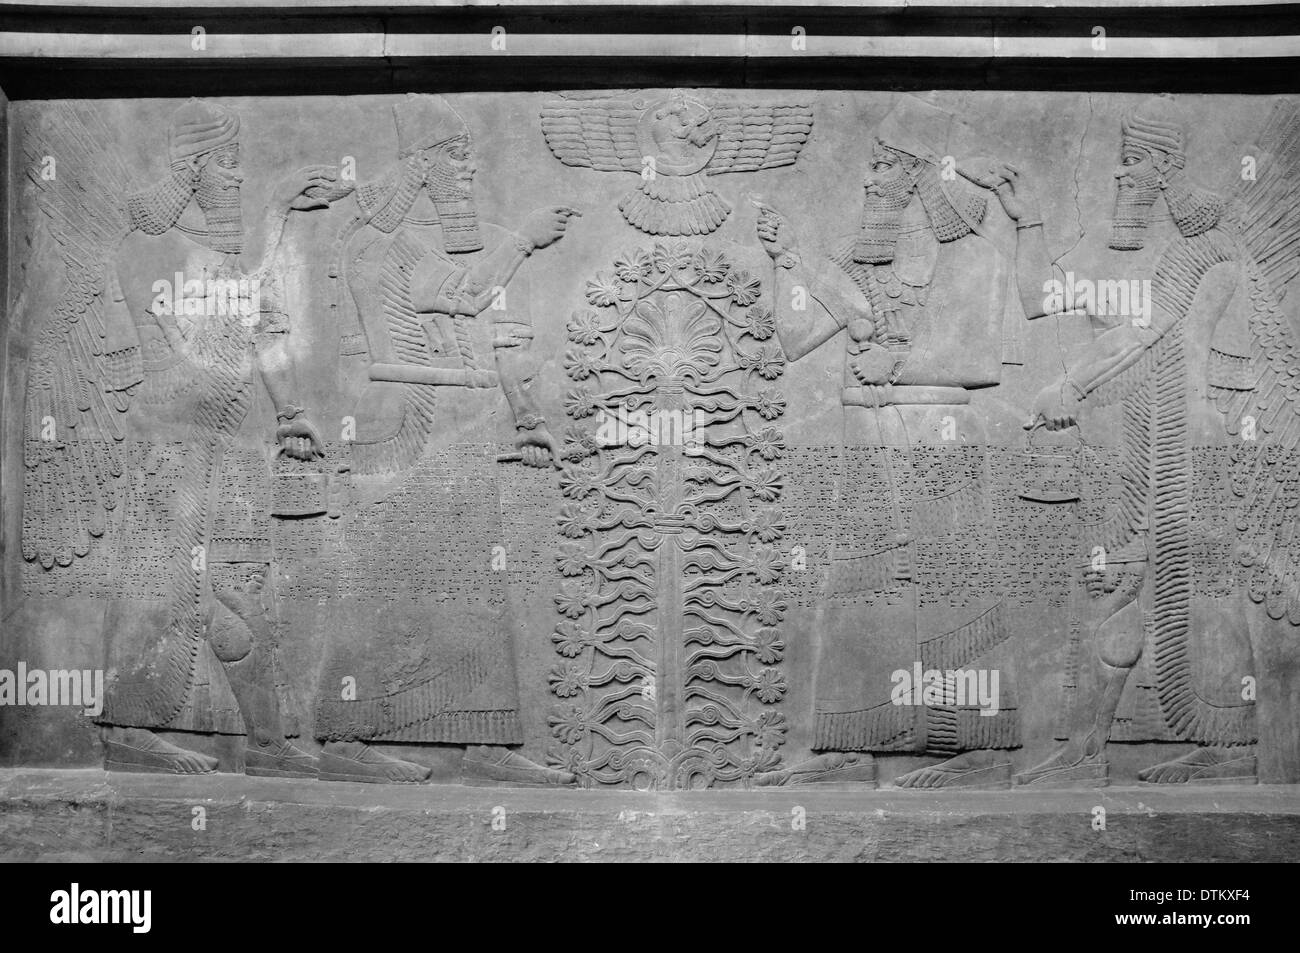 Assyrian Wall Art at the British Museum, London, England - Stock Image